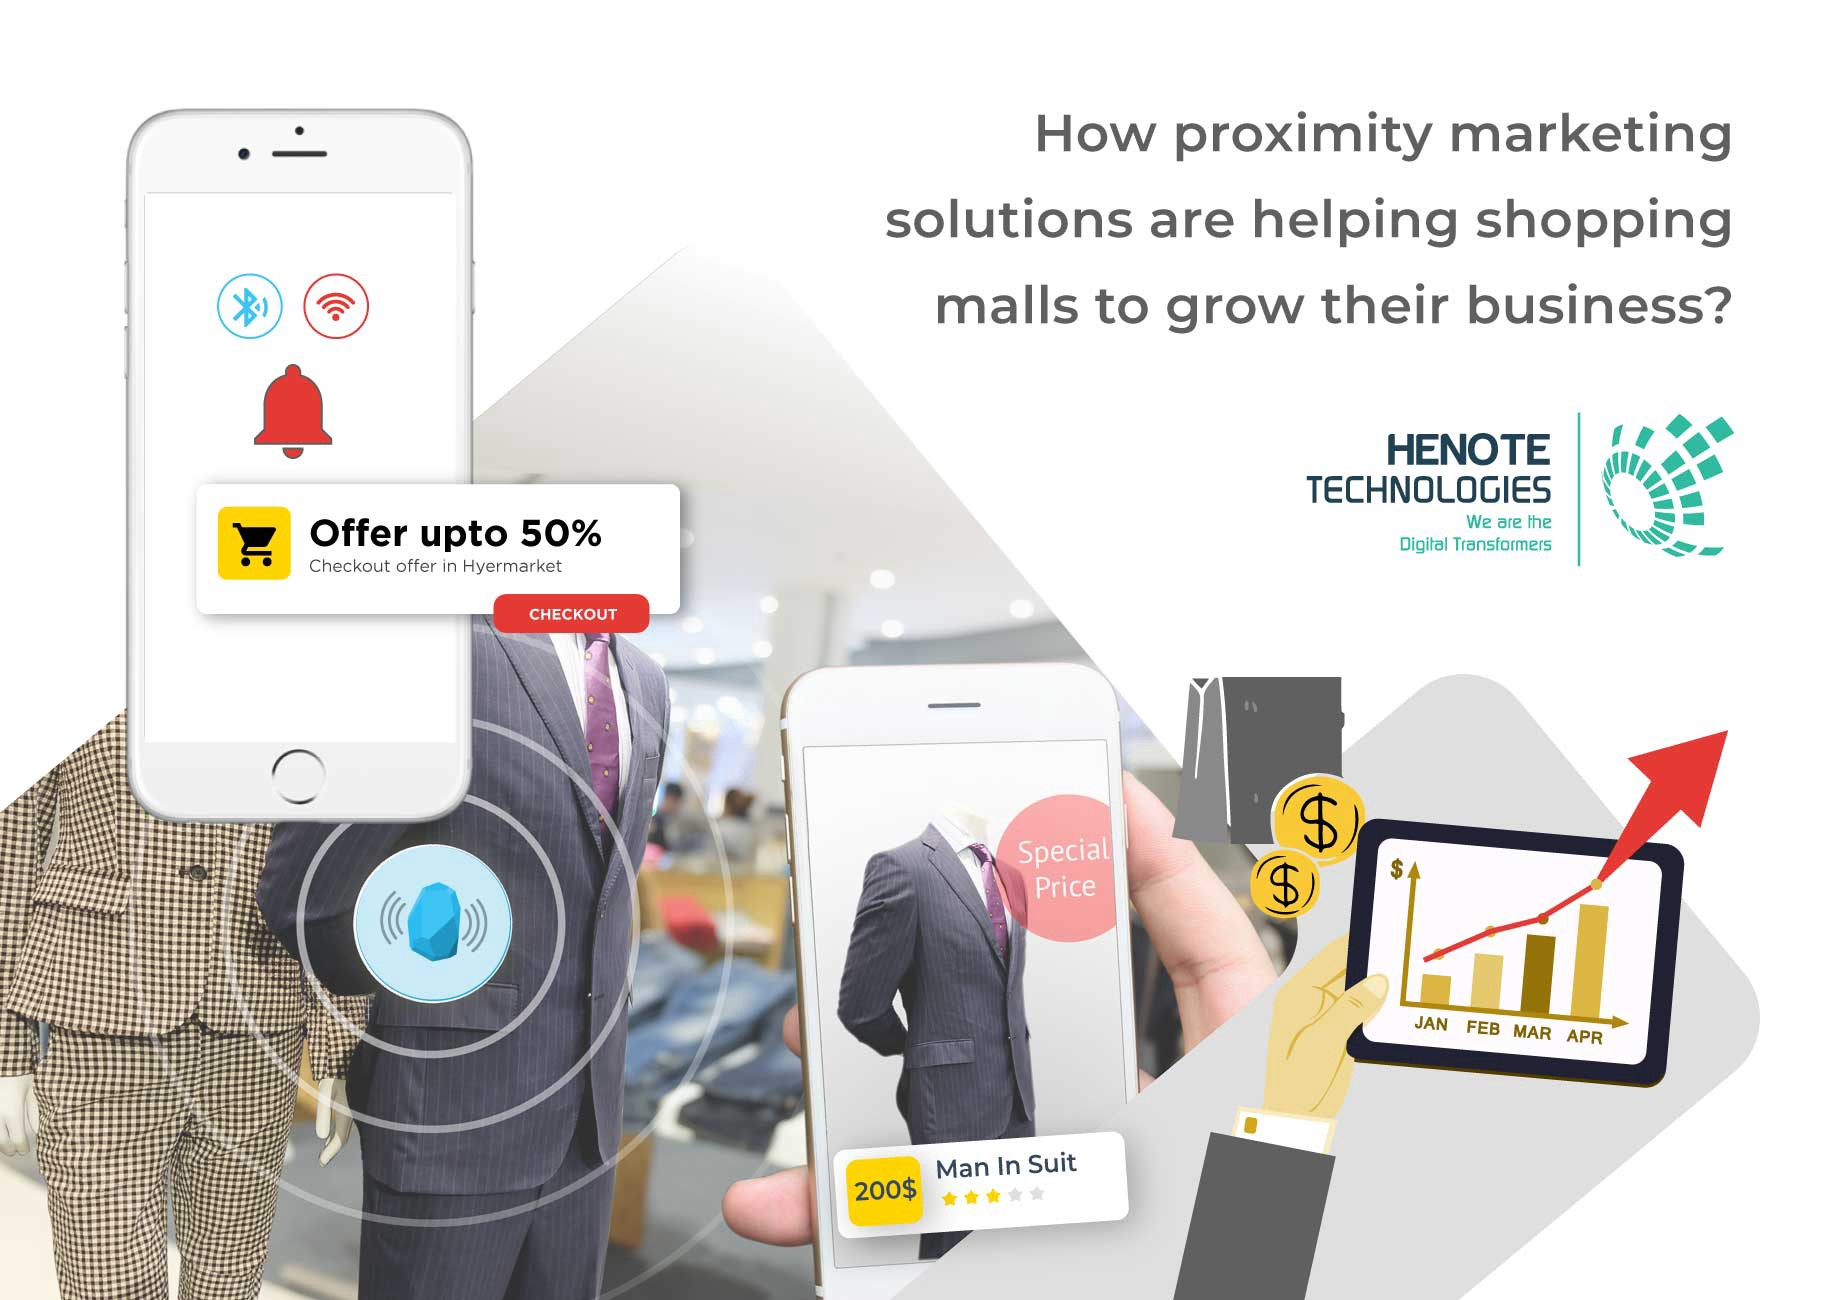 How Proximity Marketing Solutions are helping Shopping Malls